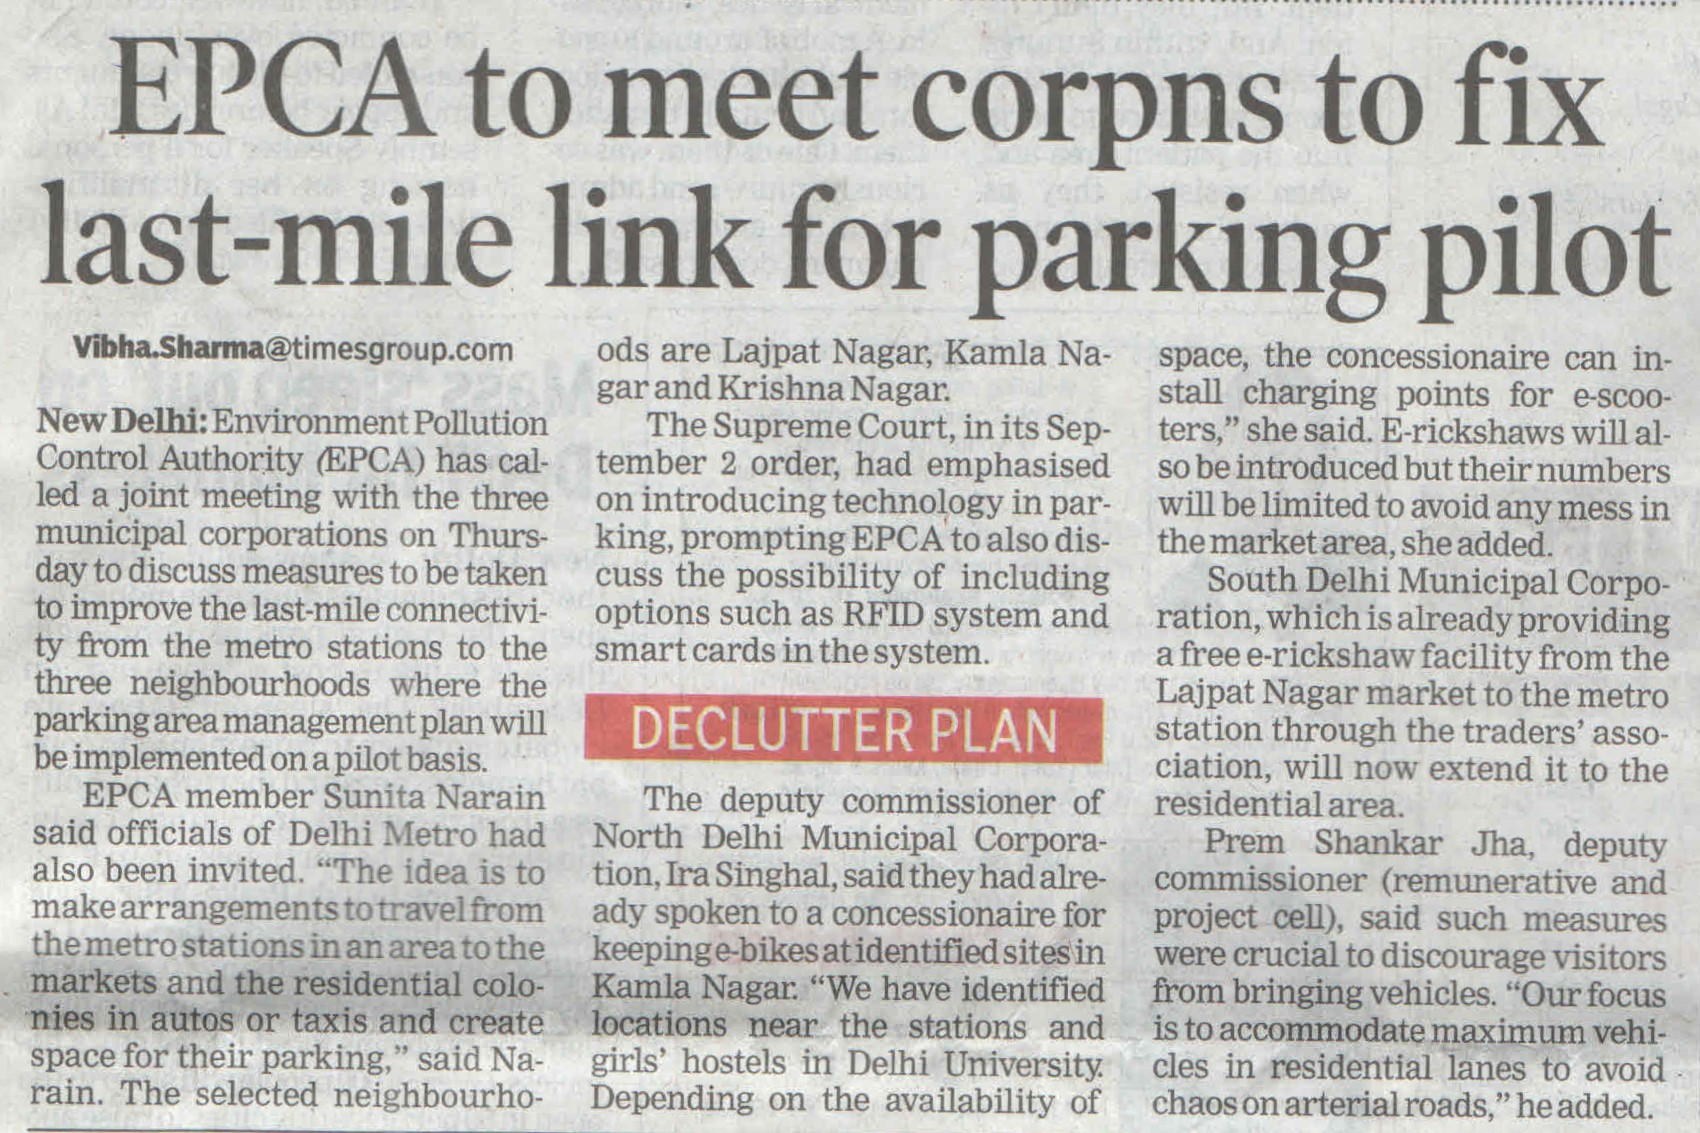 EPCA to meet corpns to fix last mile link for parking pilot